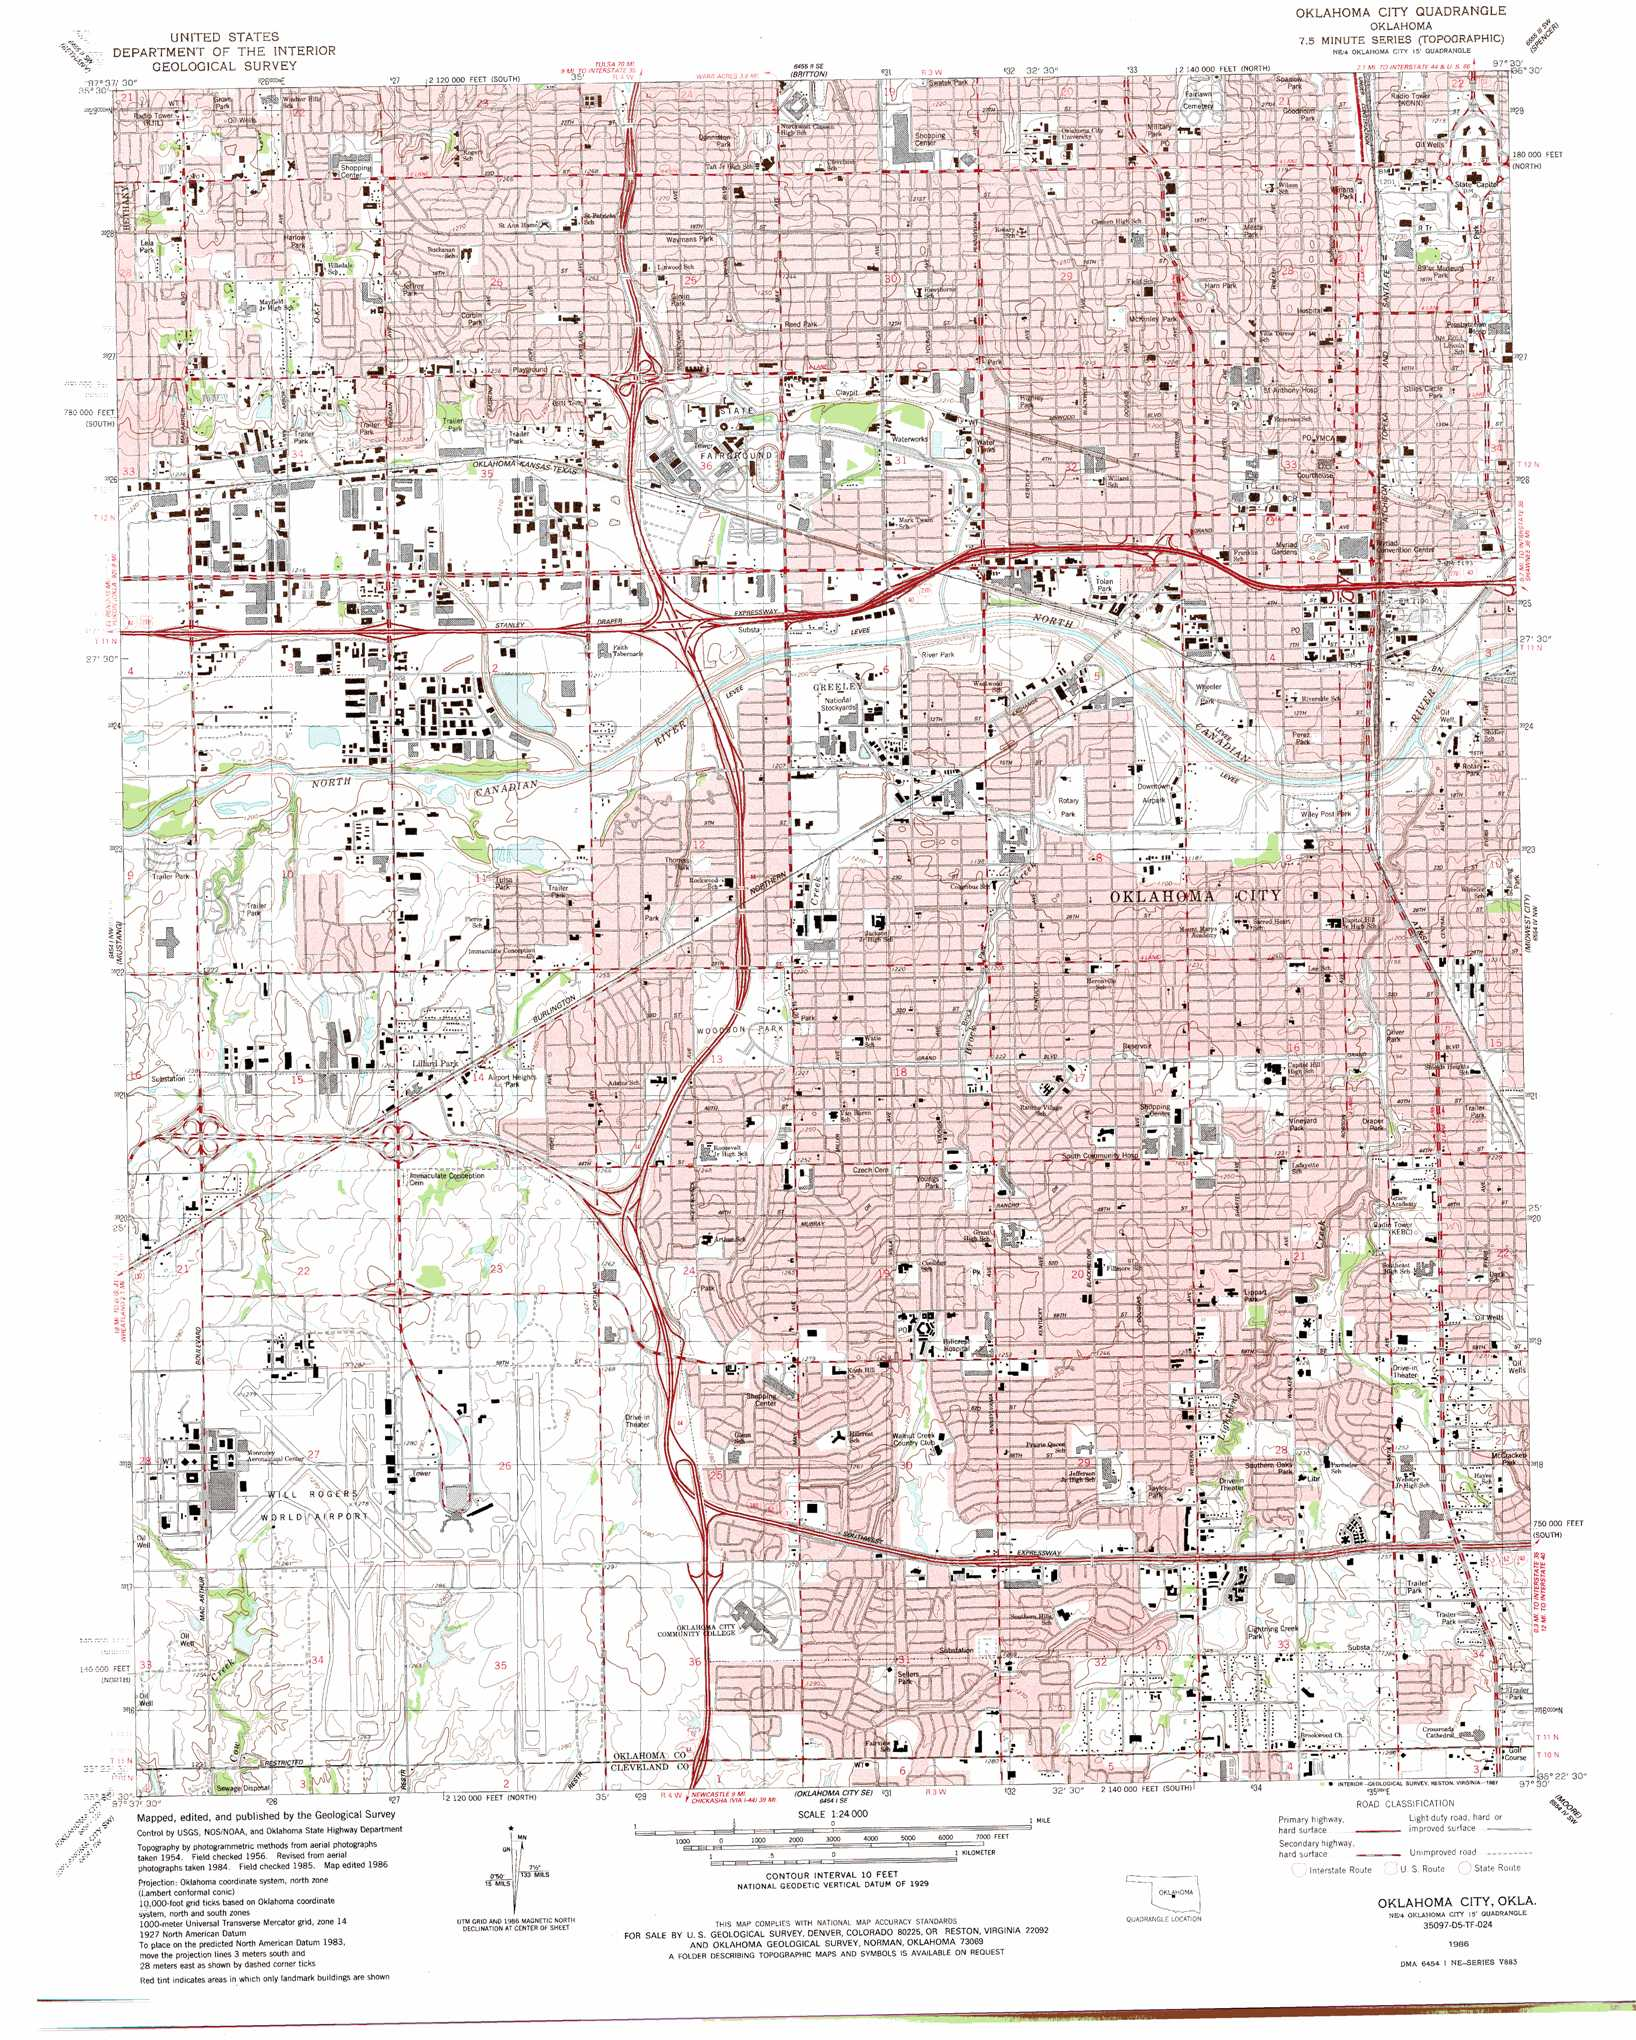 Oklahoma City topographic map, OK - USGS Topo Quad 35097d5